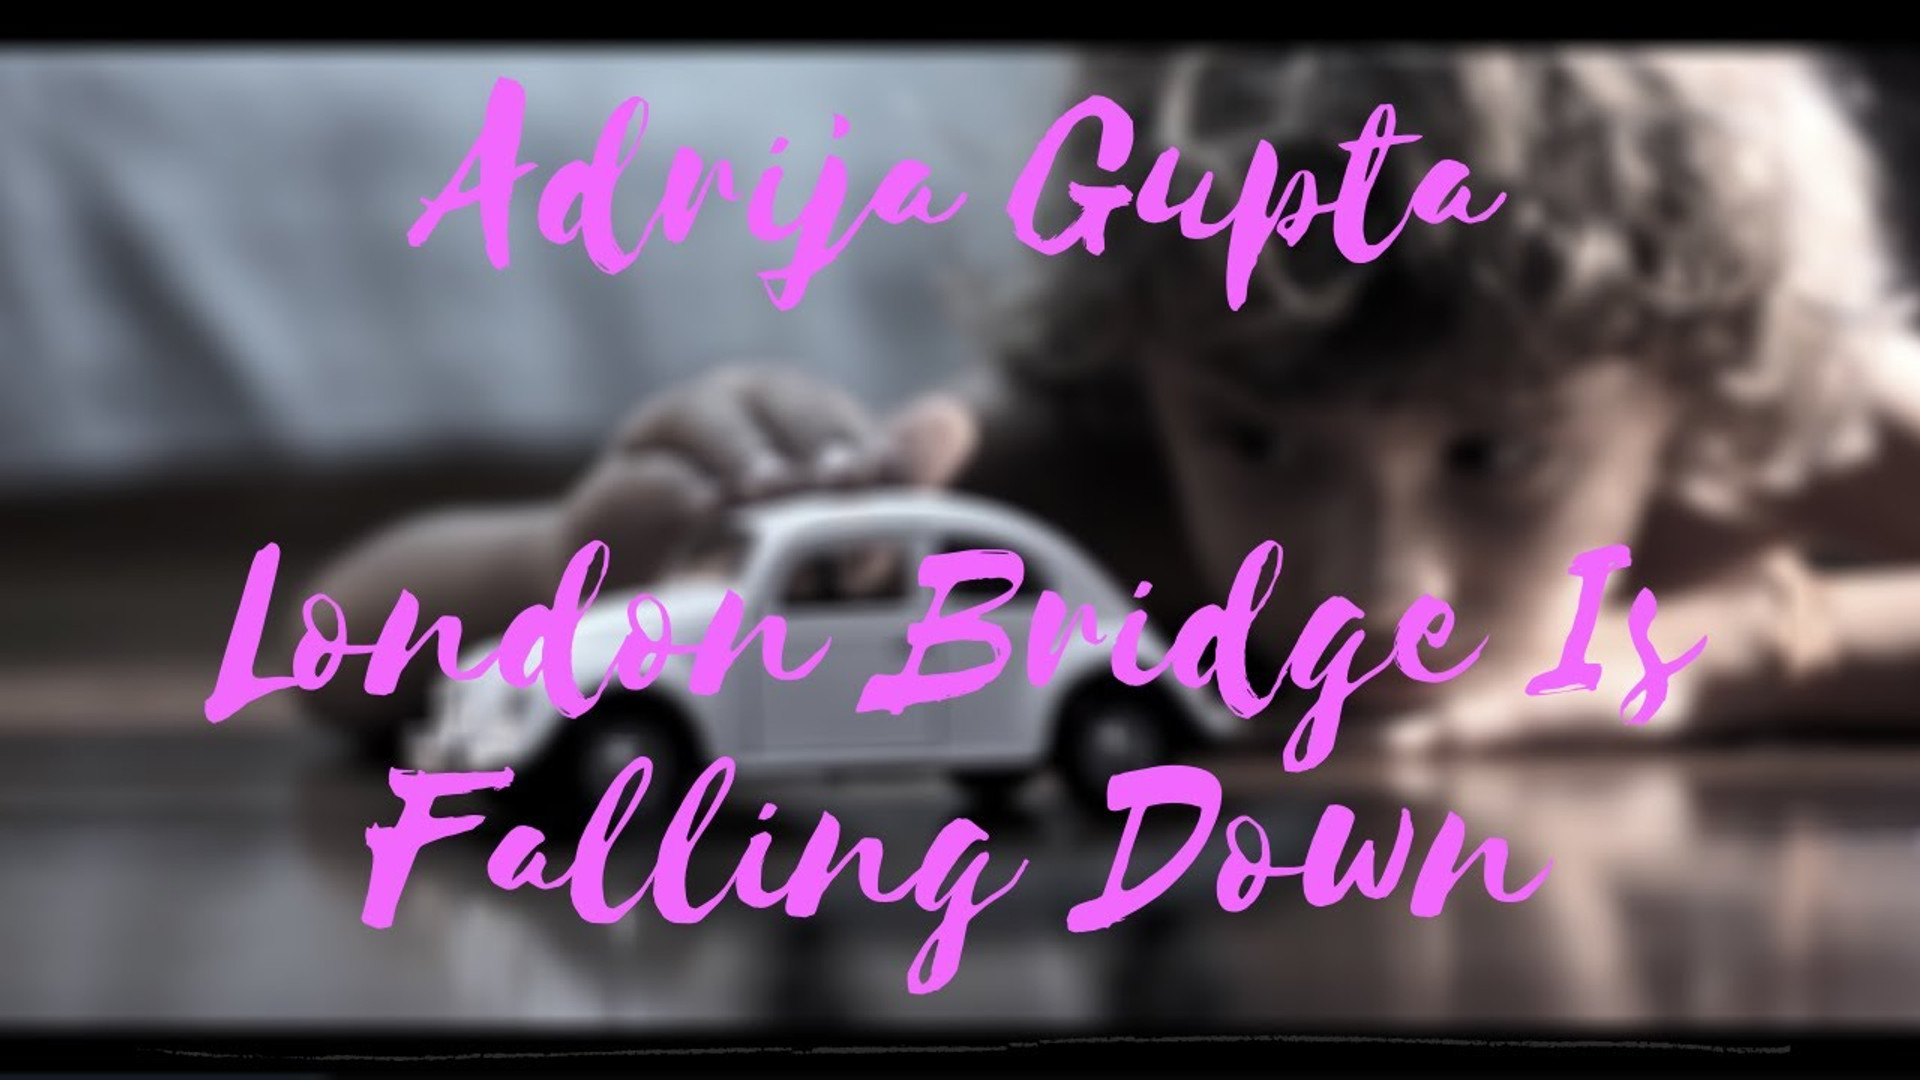 Adrija Gupta - London Bridge Is Falling Down